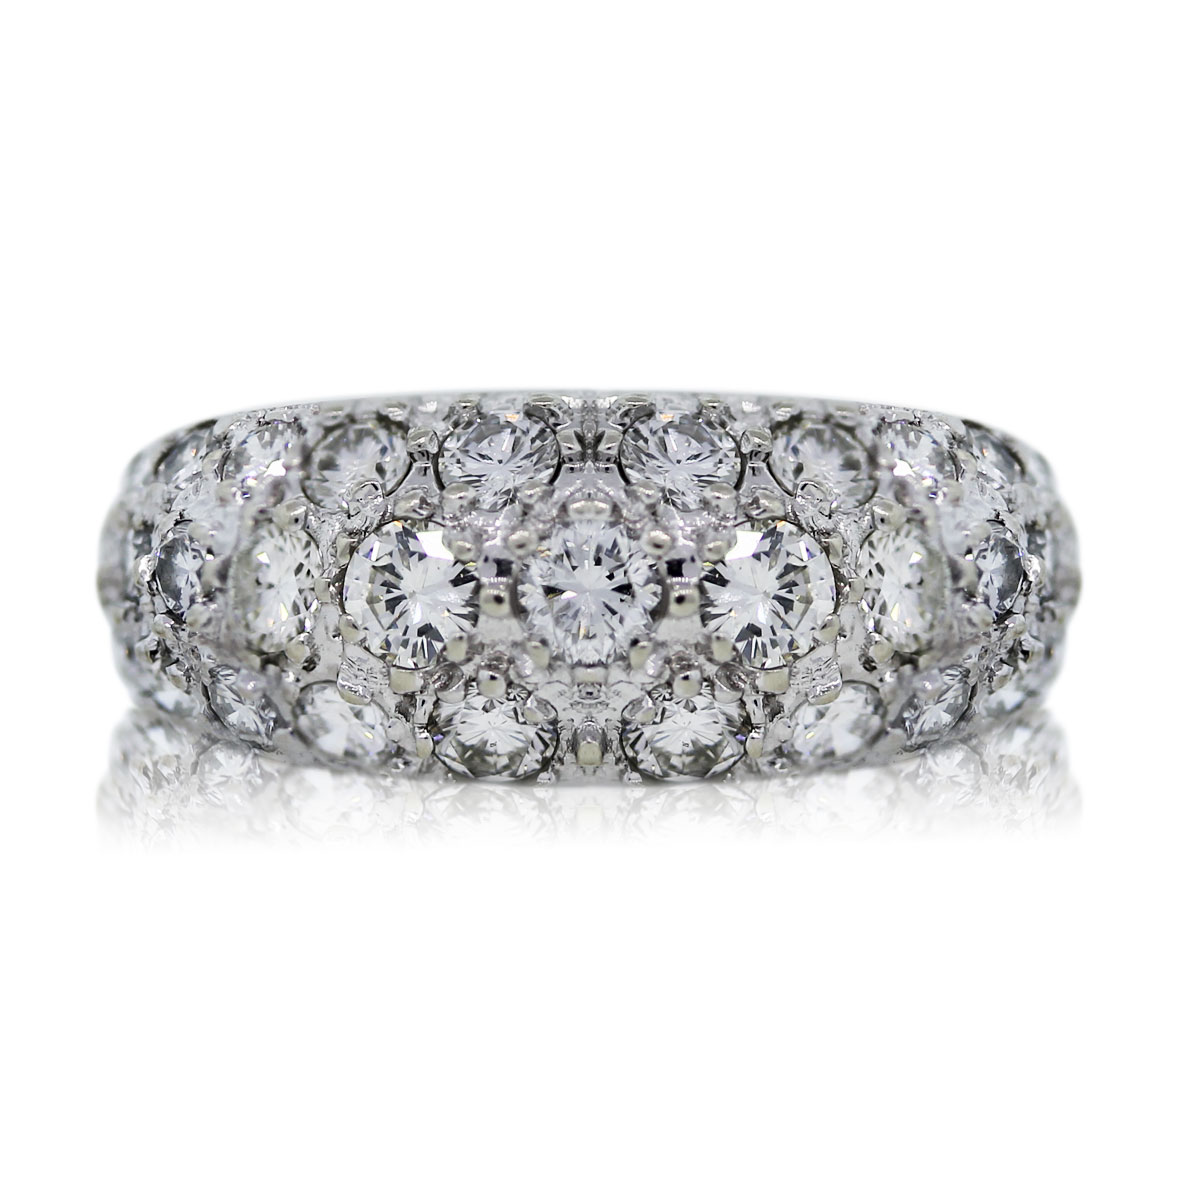 You are Viewing this Diamond Band Ring!